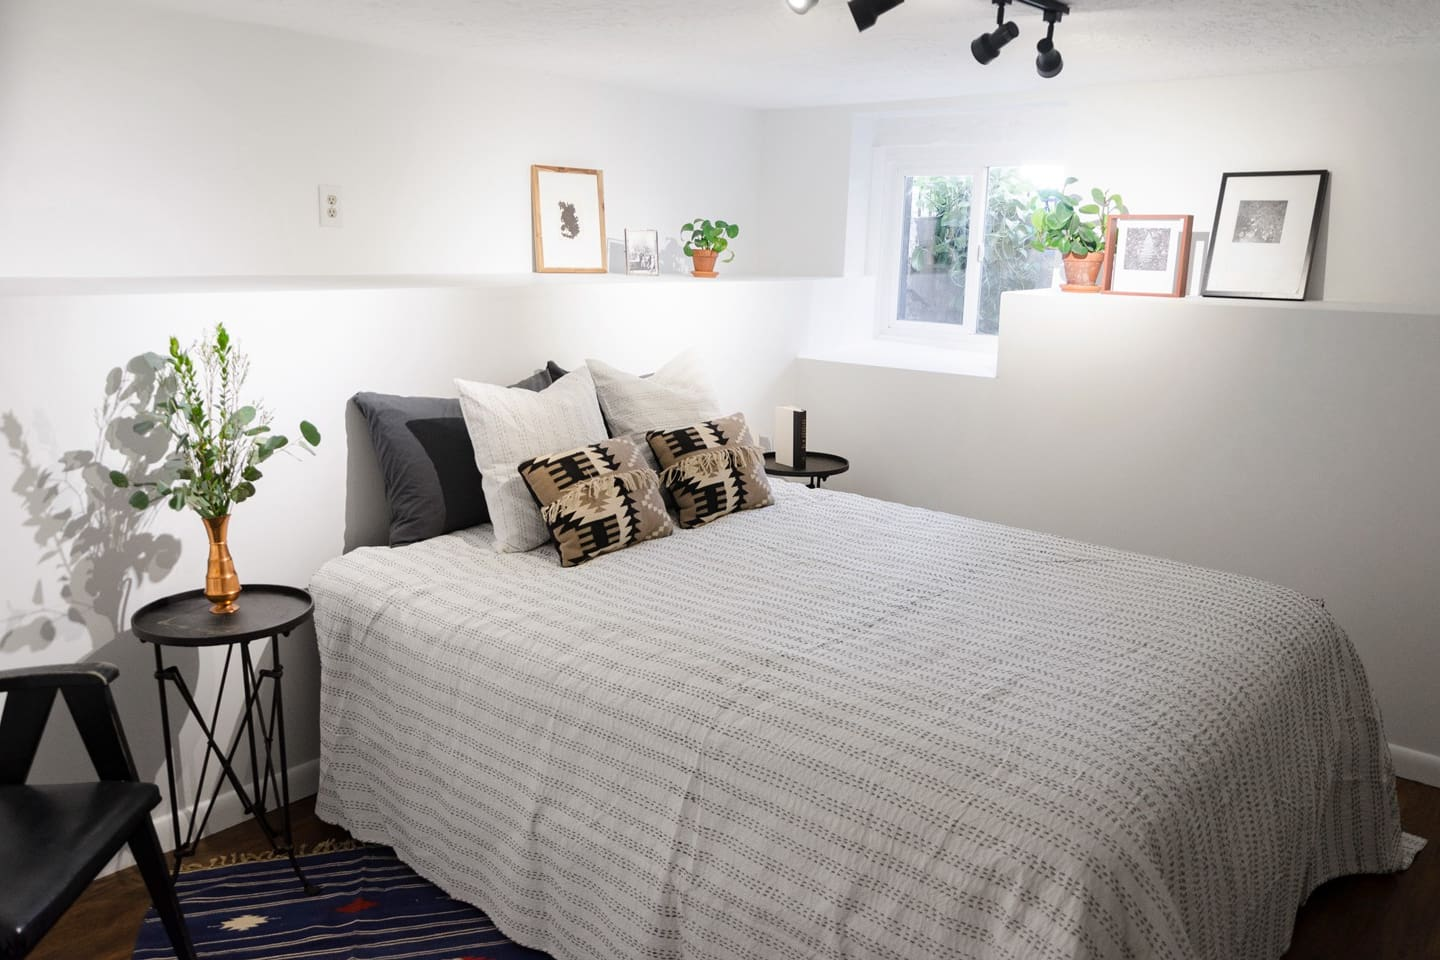 The bedroom has a queen size bed, plenty of closet space and shelving, and a window to the backyard.